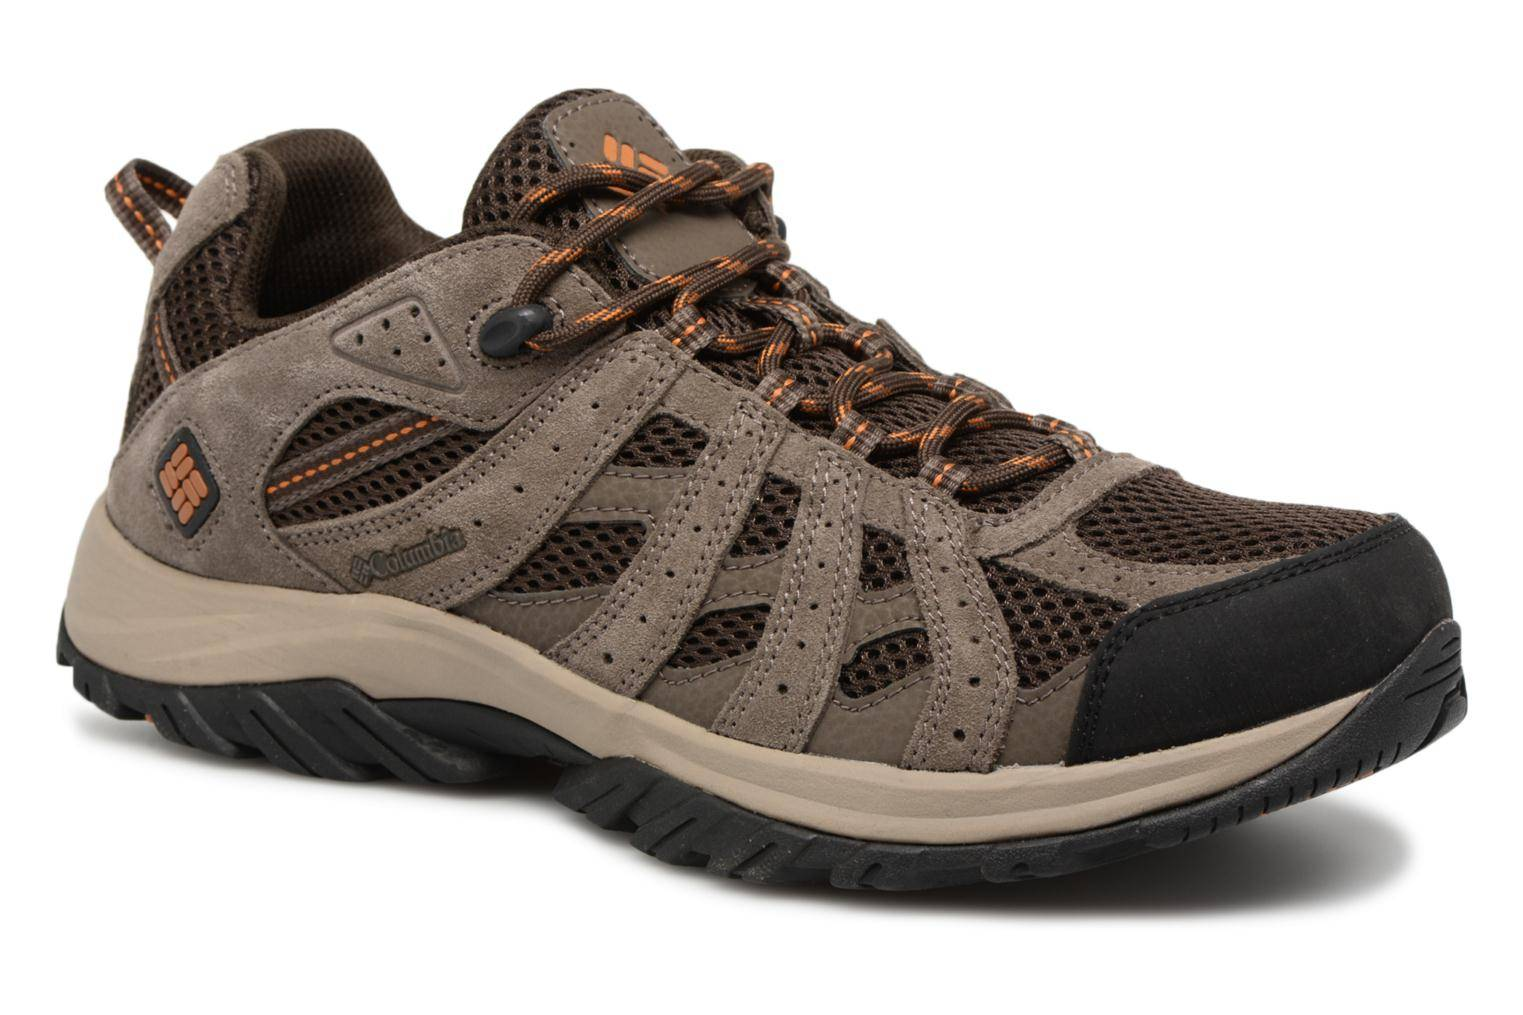 Columbia Chaussures de sport - Columbia - Canyon Point